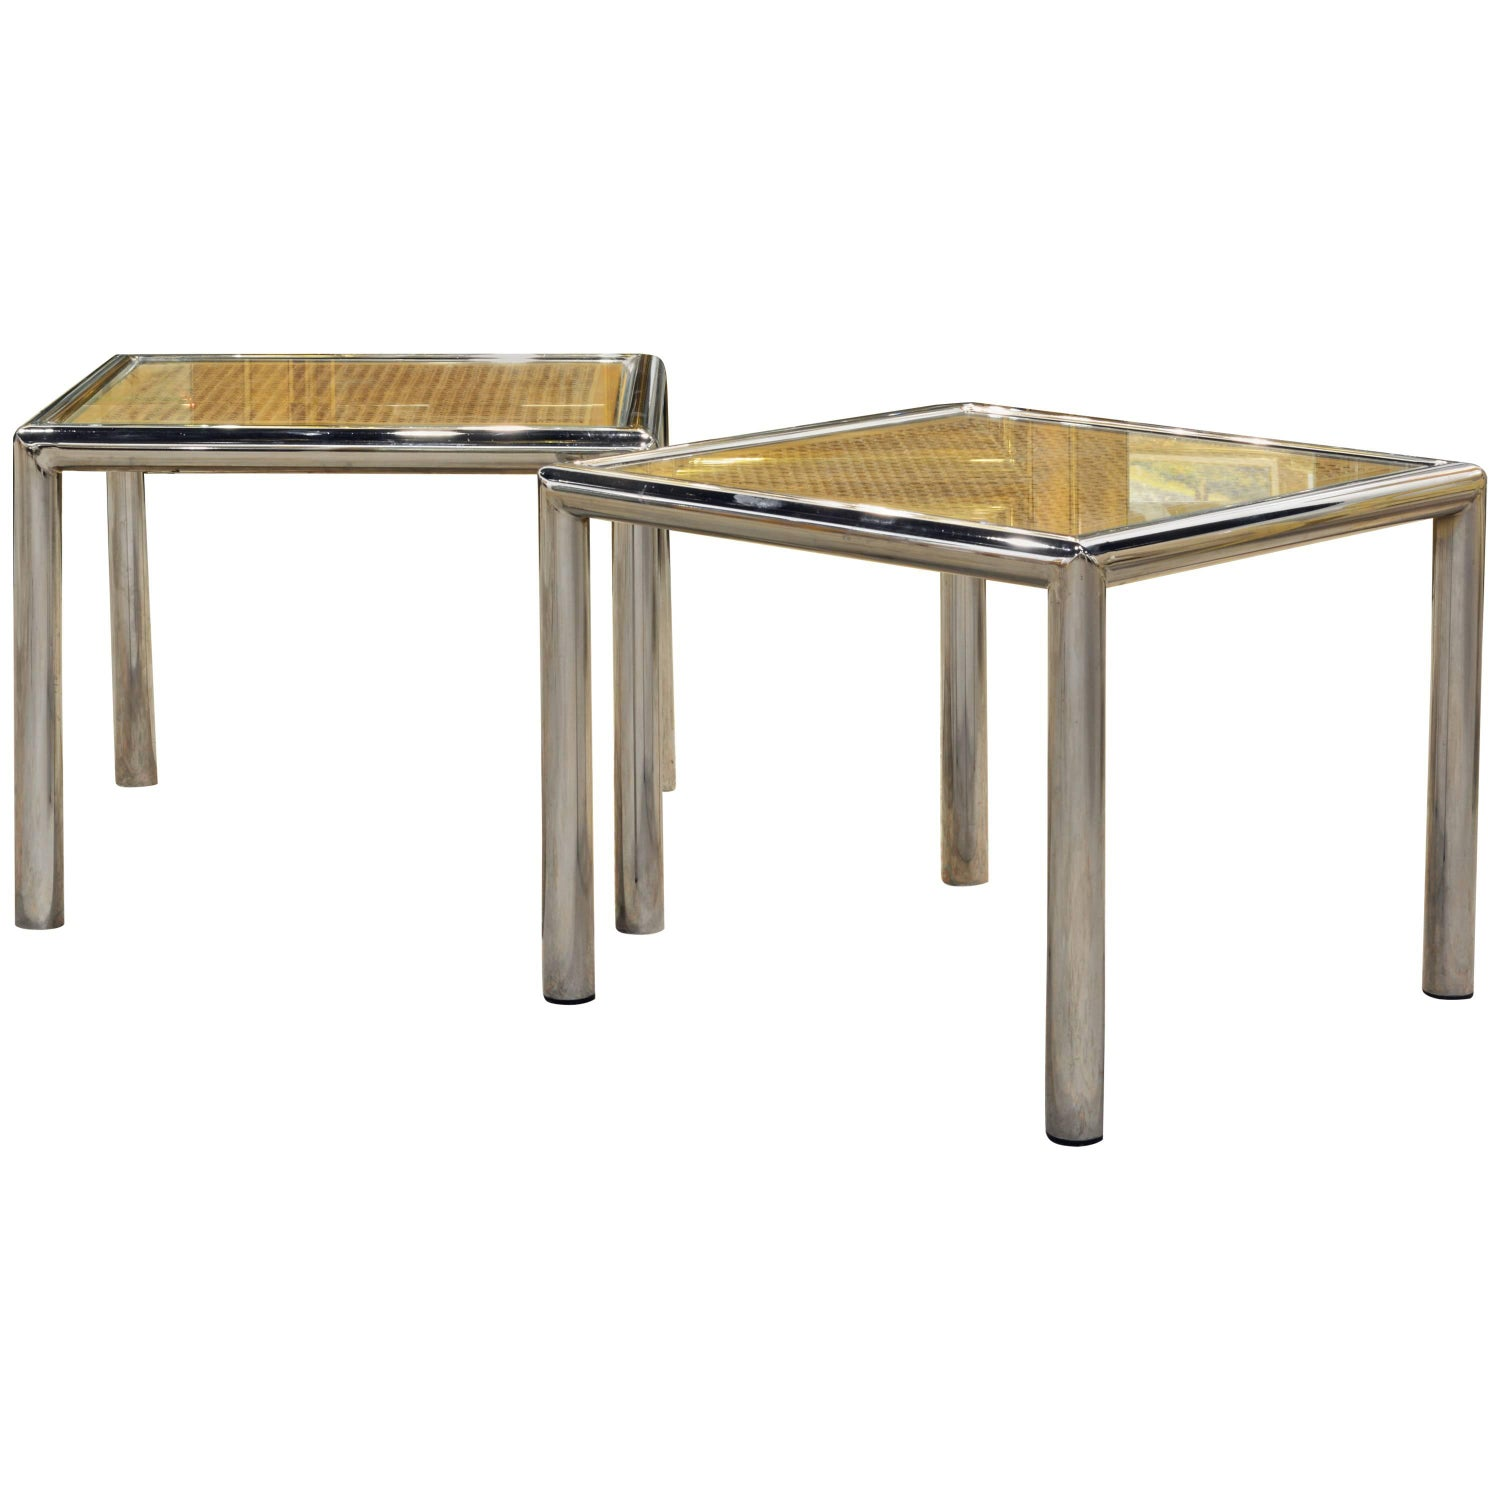 Milo Baughman Tables 252 For Sale at 1stdibs